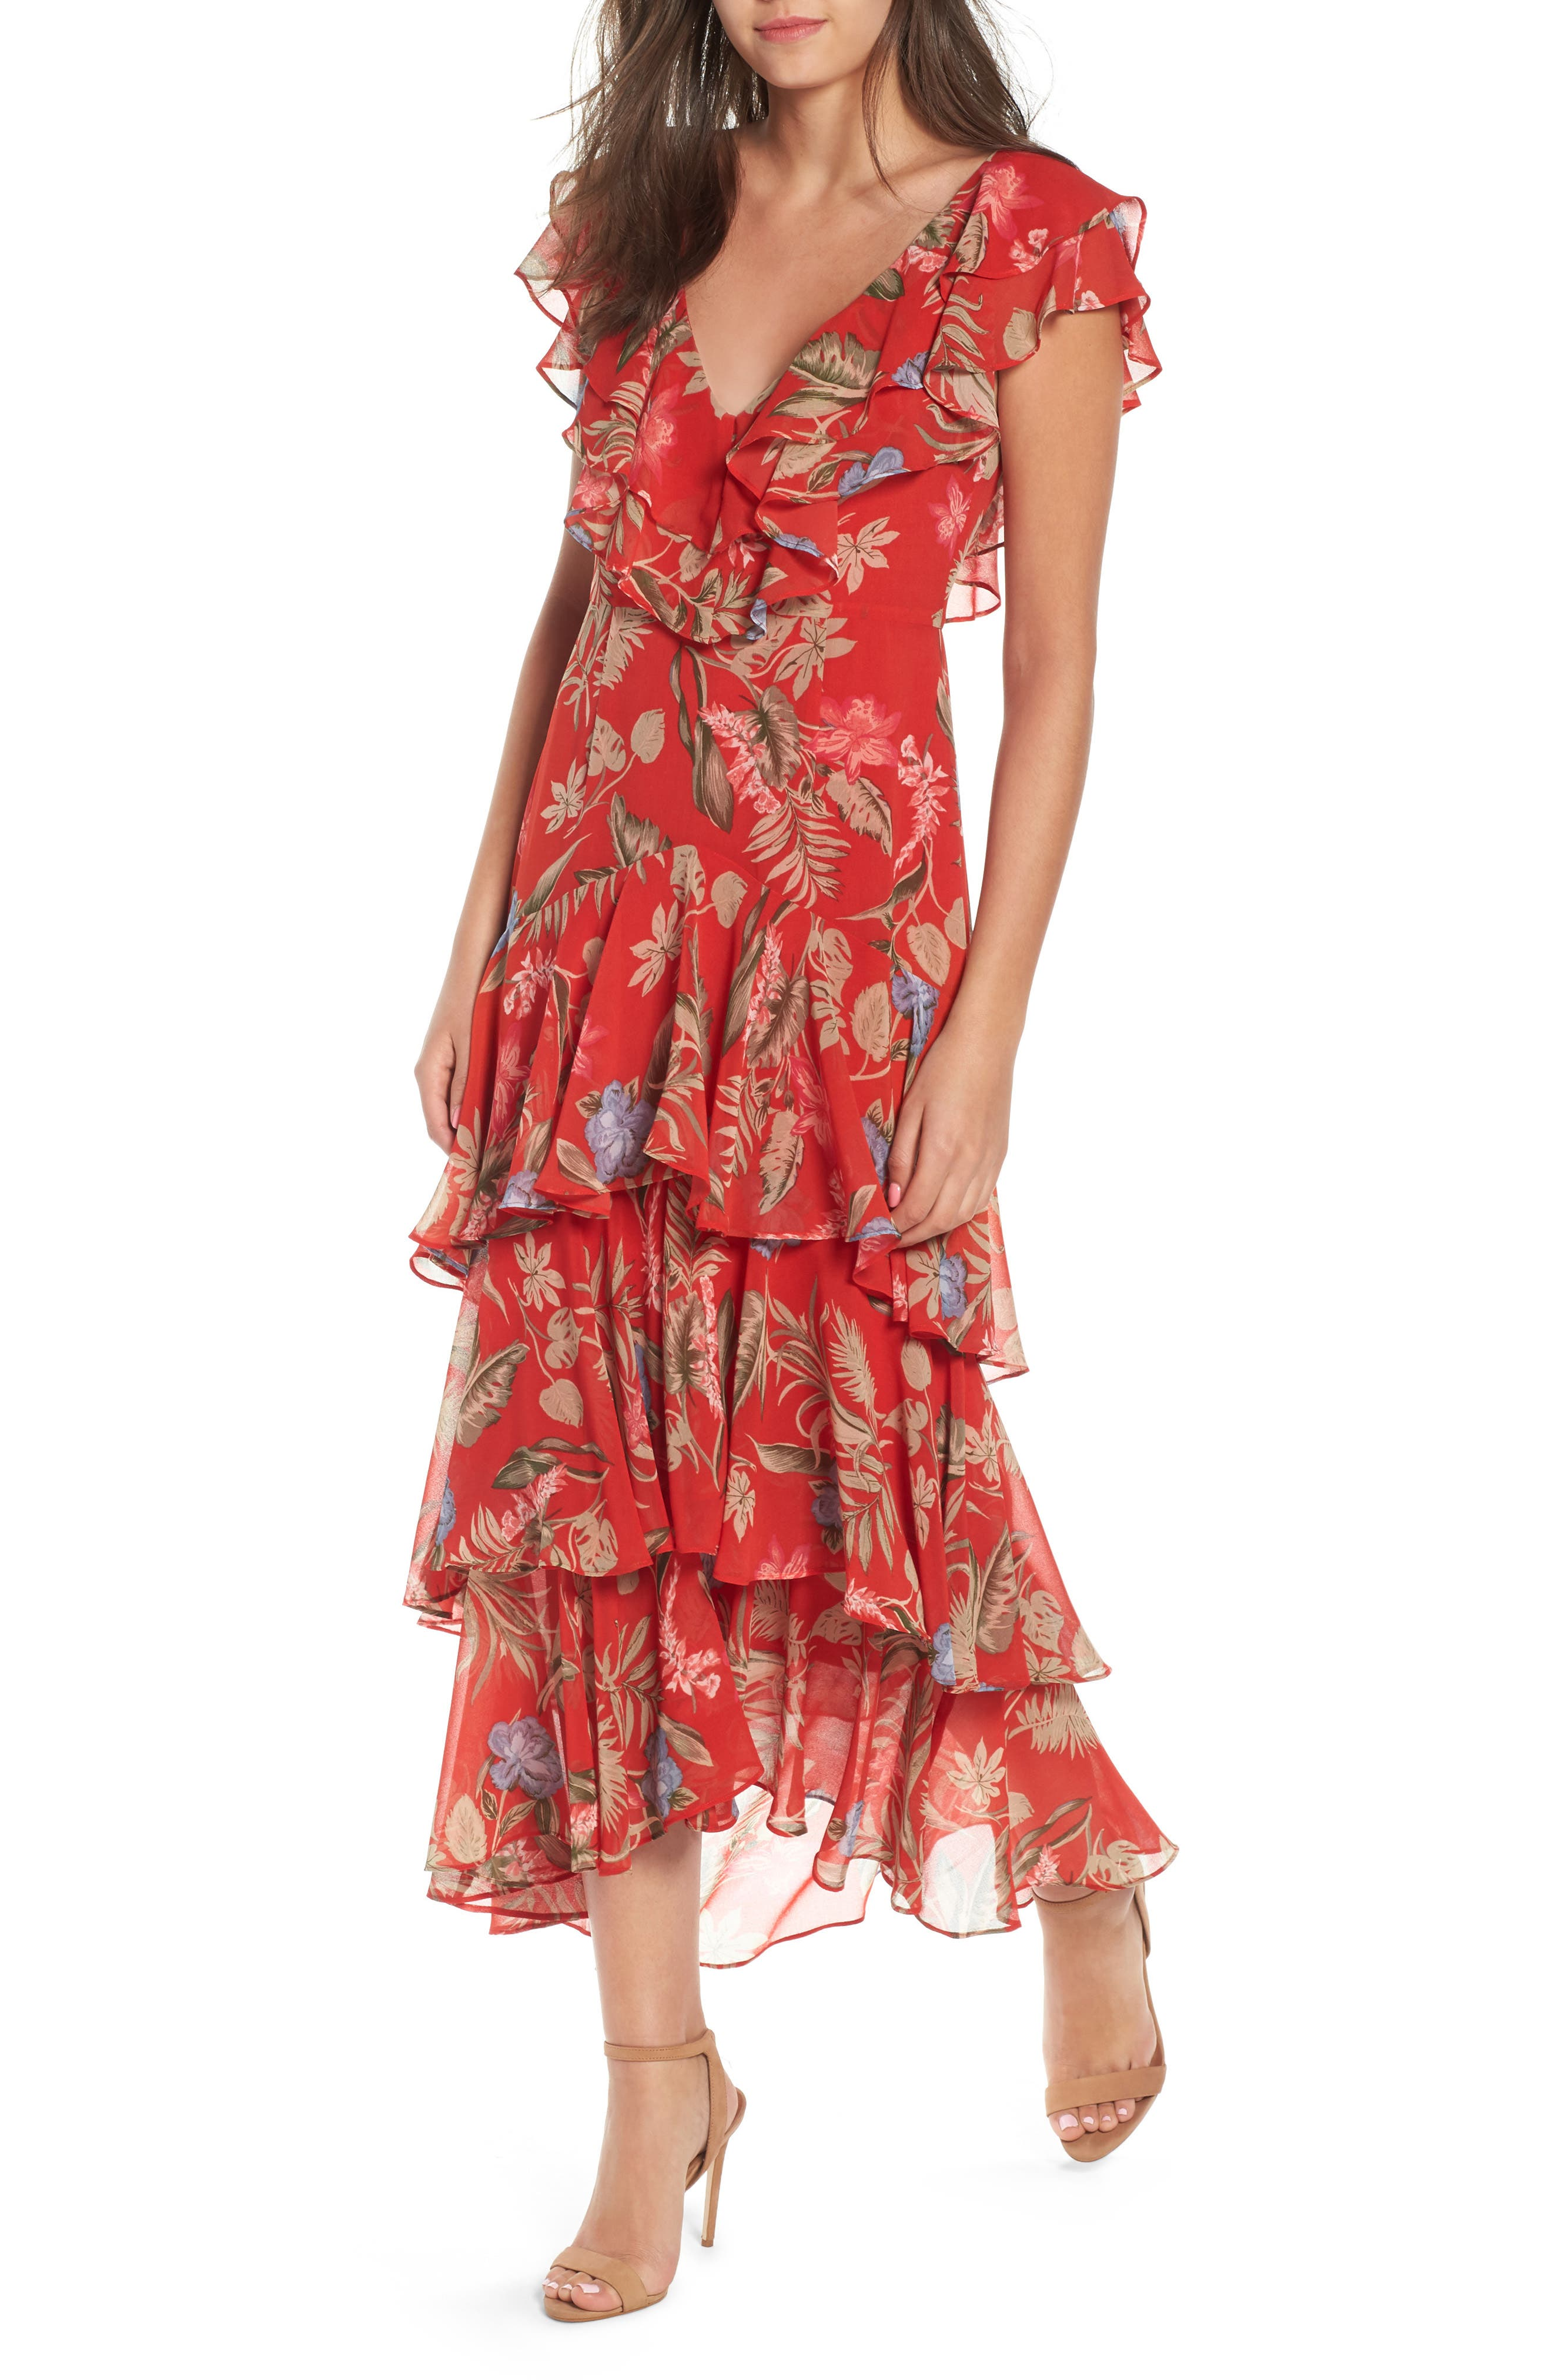 Chelsea Tiered Ruffle Maxi Dress,                             Main thumbnail 1, color,                             Red Tropical